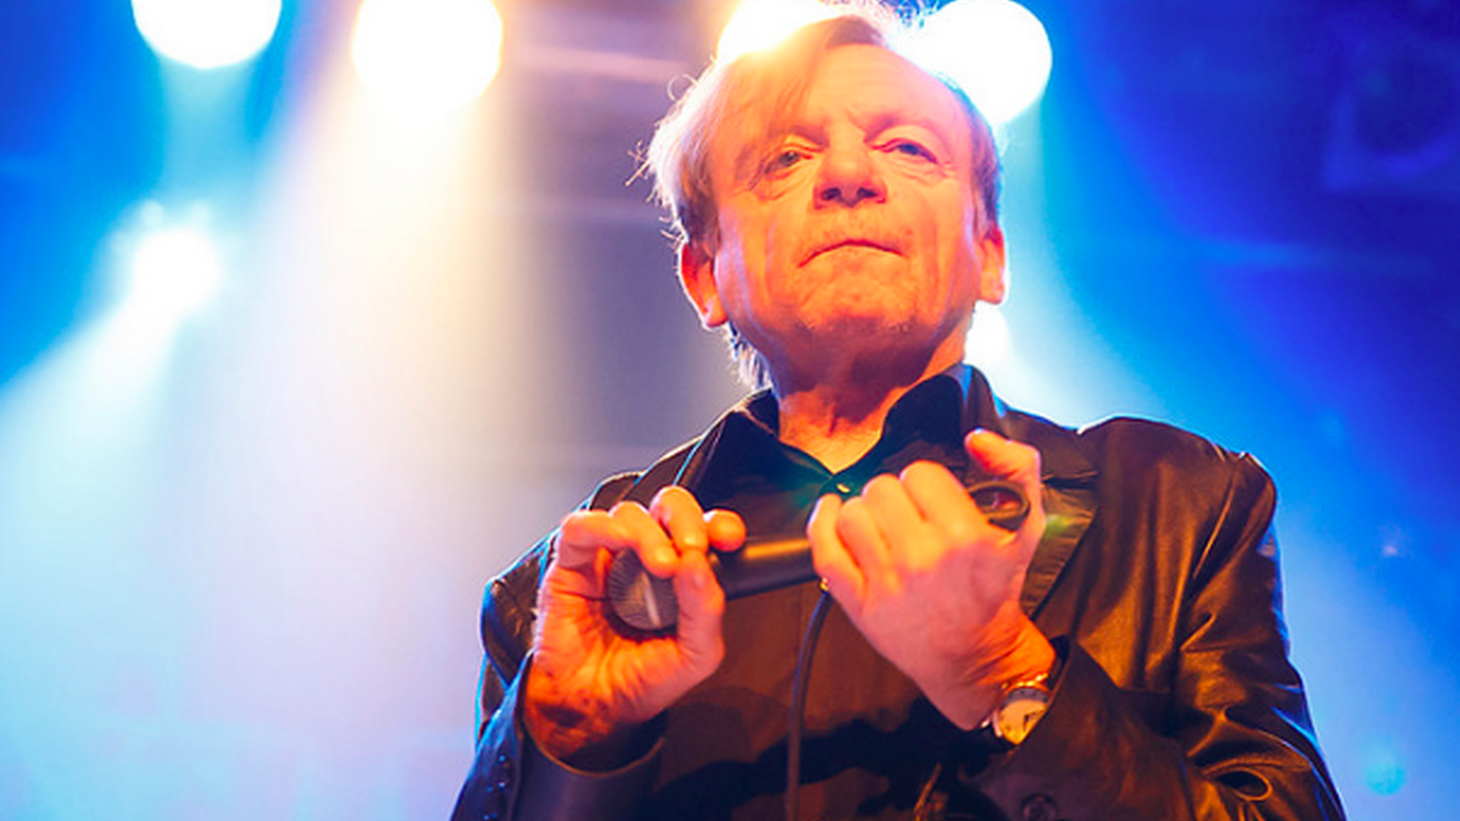 Host Eric J. Lawrence welcomes Mark E. Smith, leader and founder of legendary UK post-punk band The Fall, in a rare and intimate interview on Dragnet.